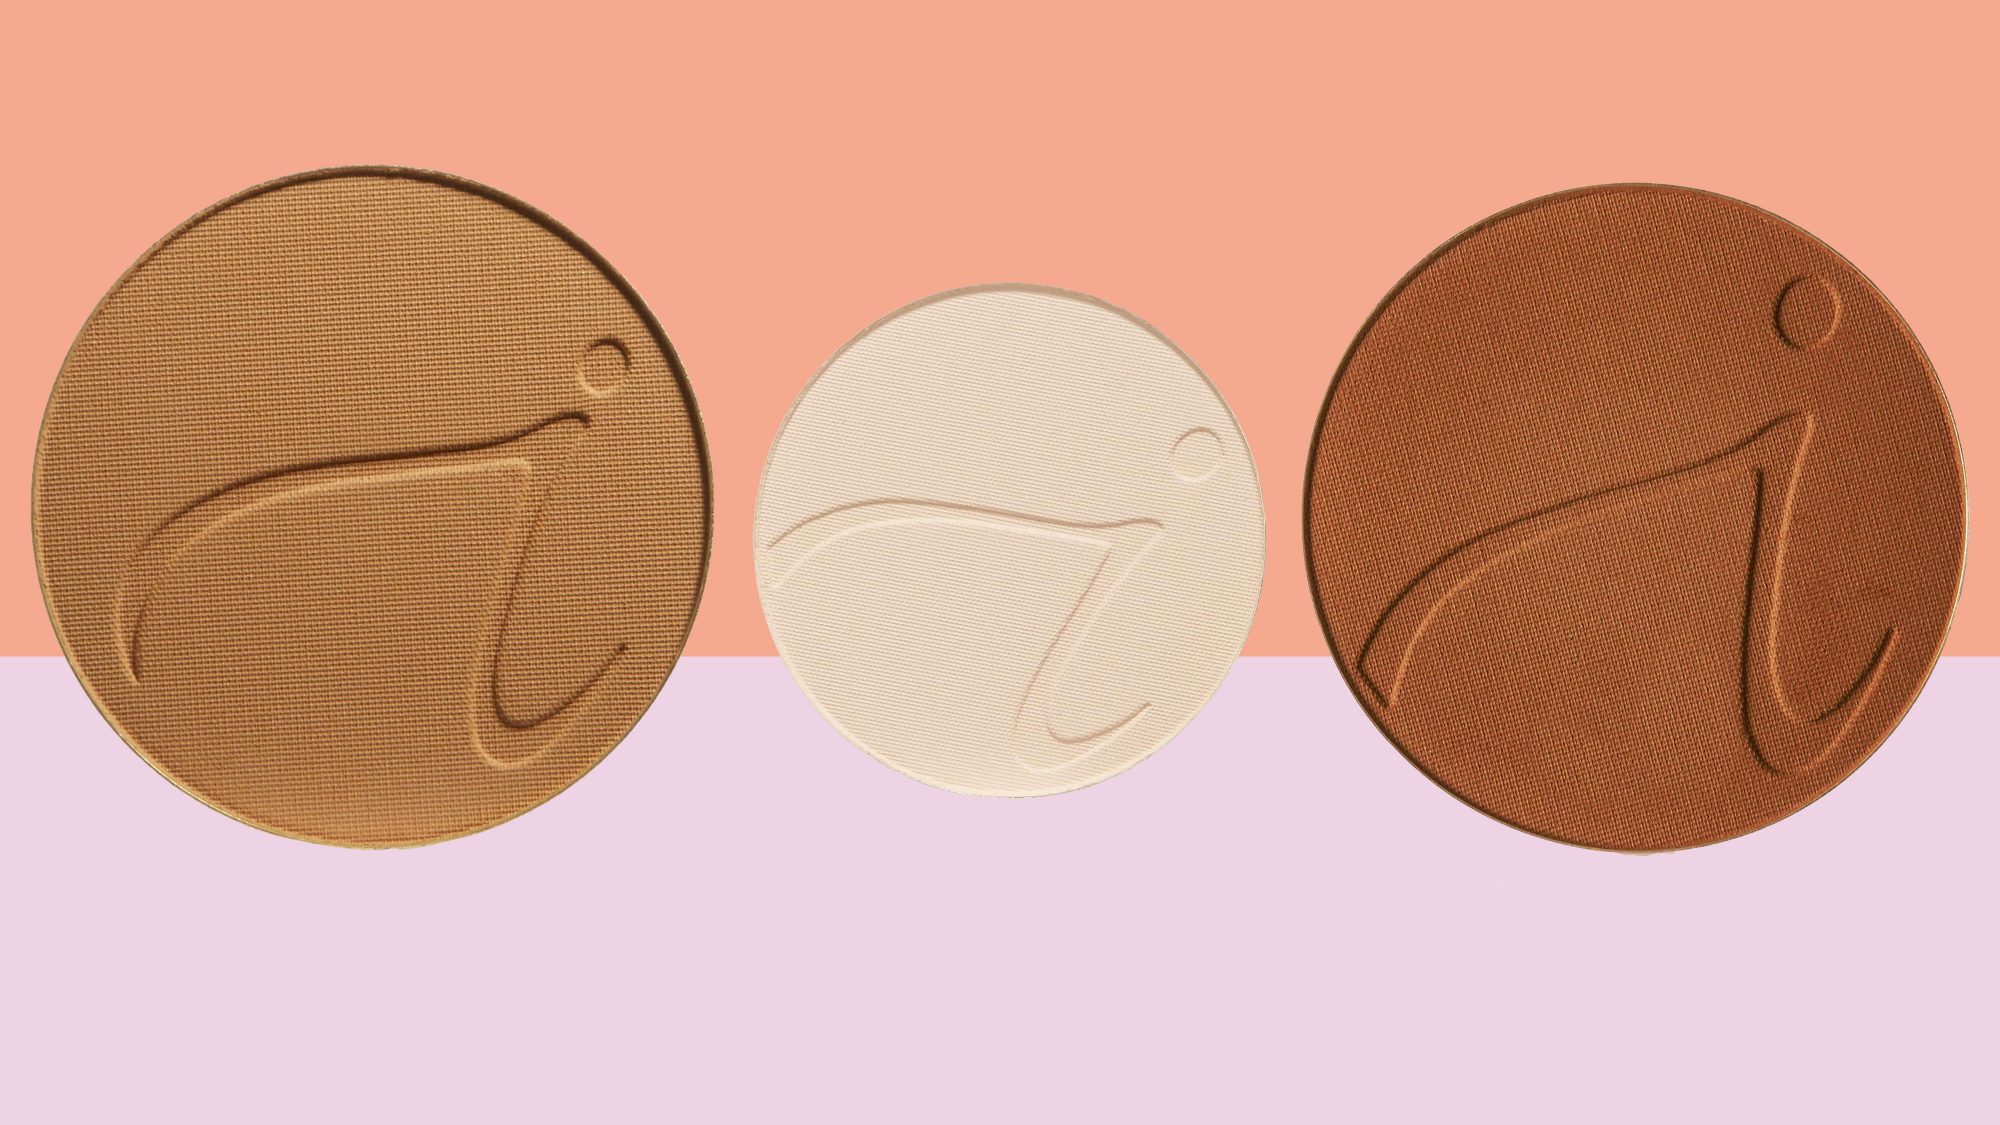 jane iredale purepressed base mineral pressed powder foundation